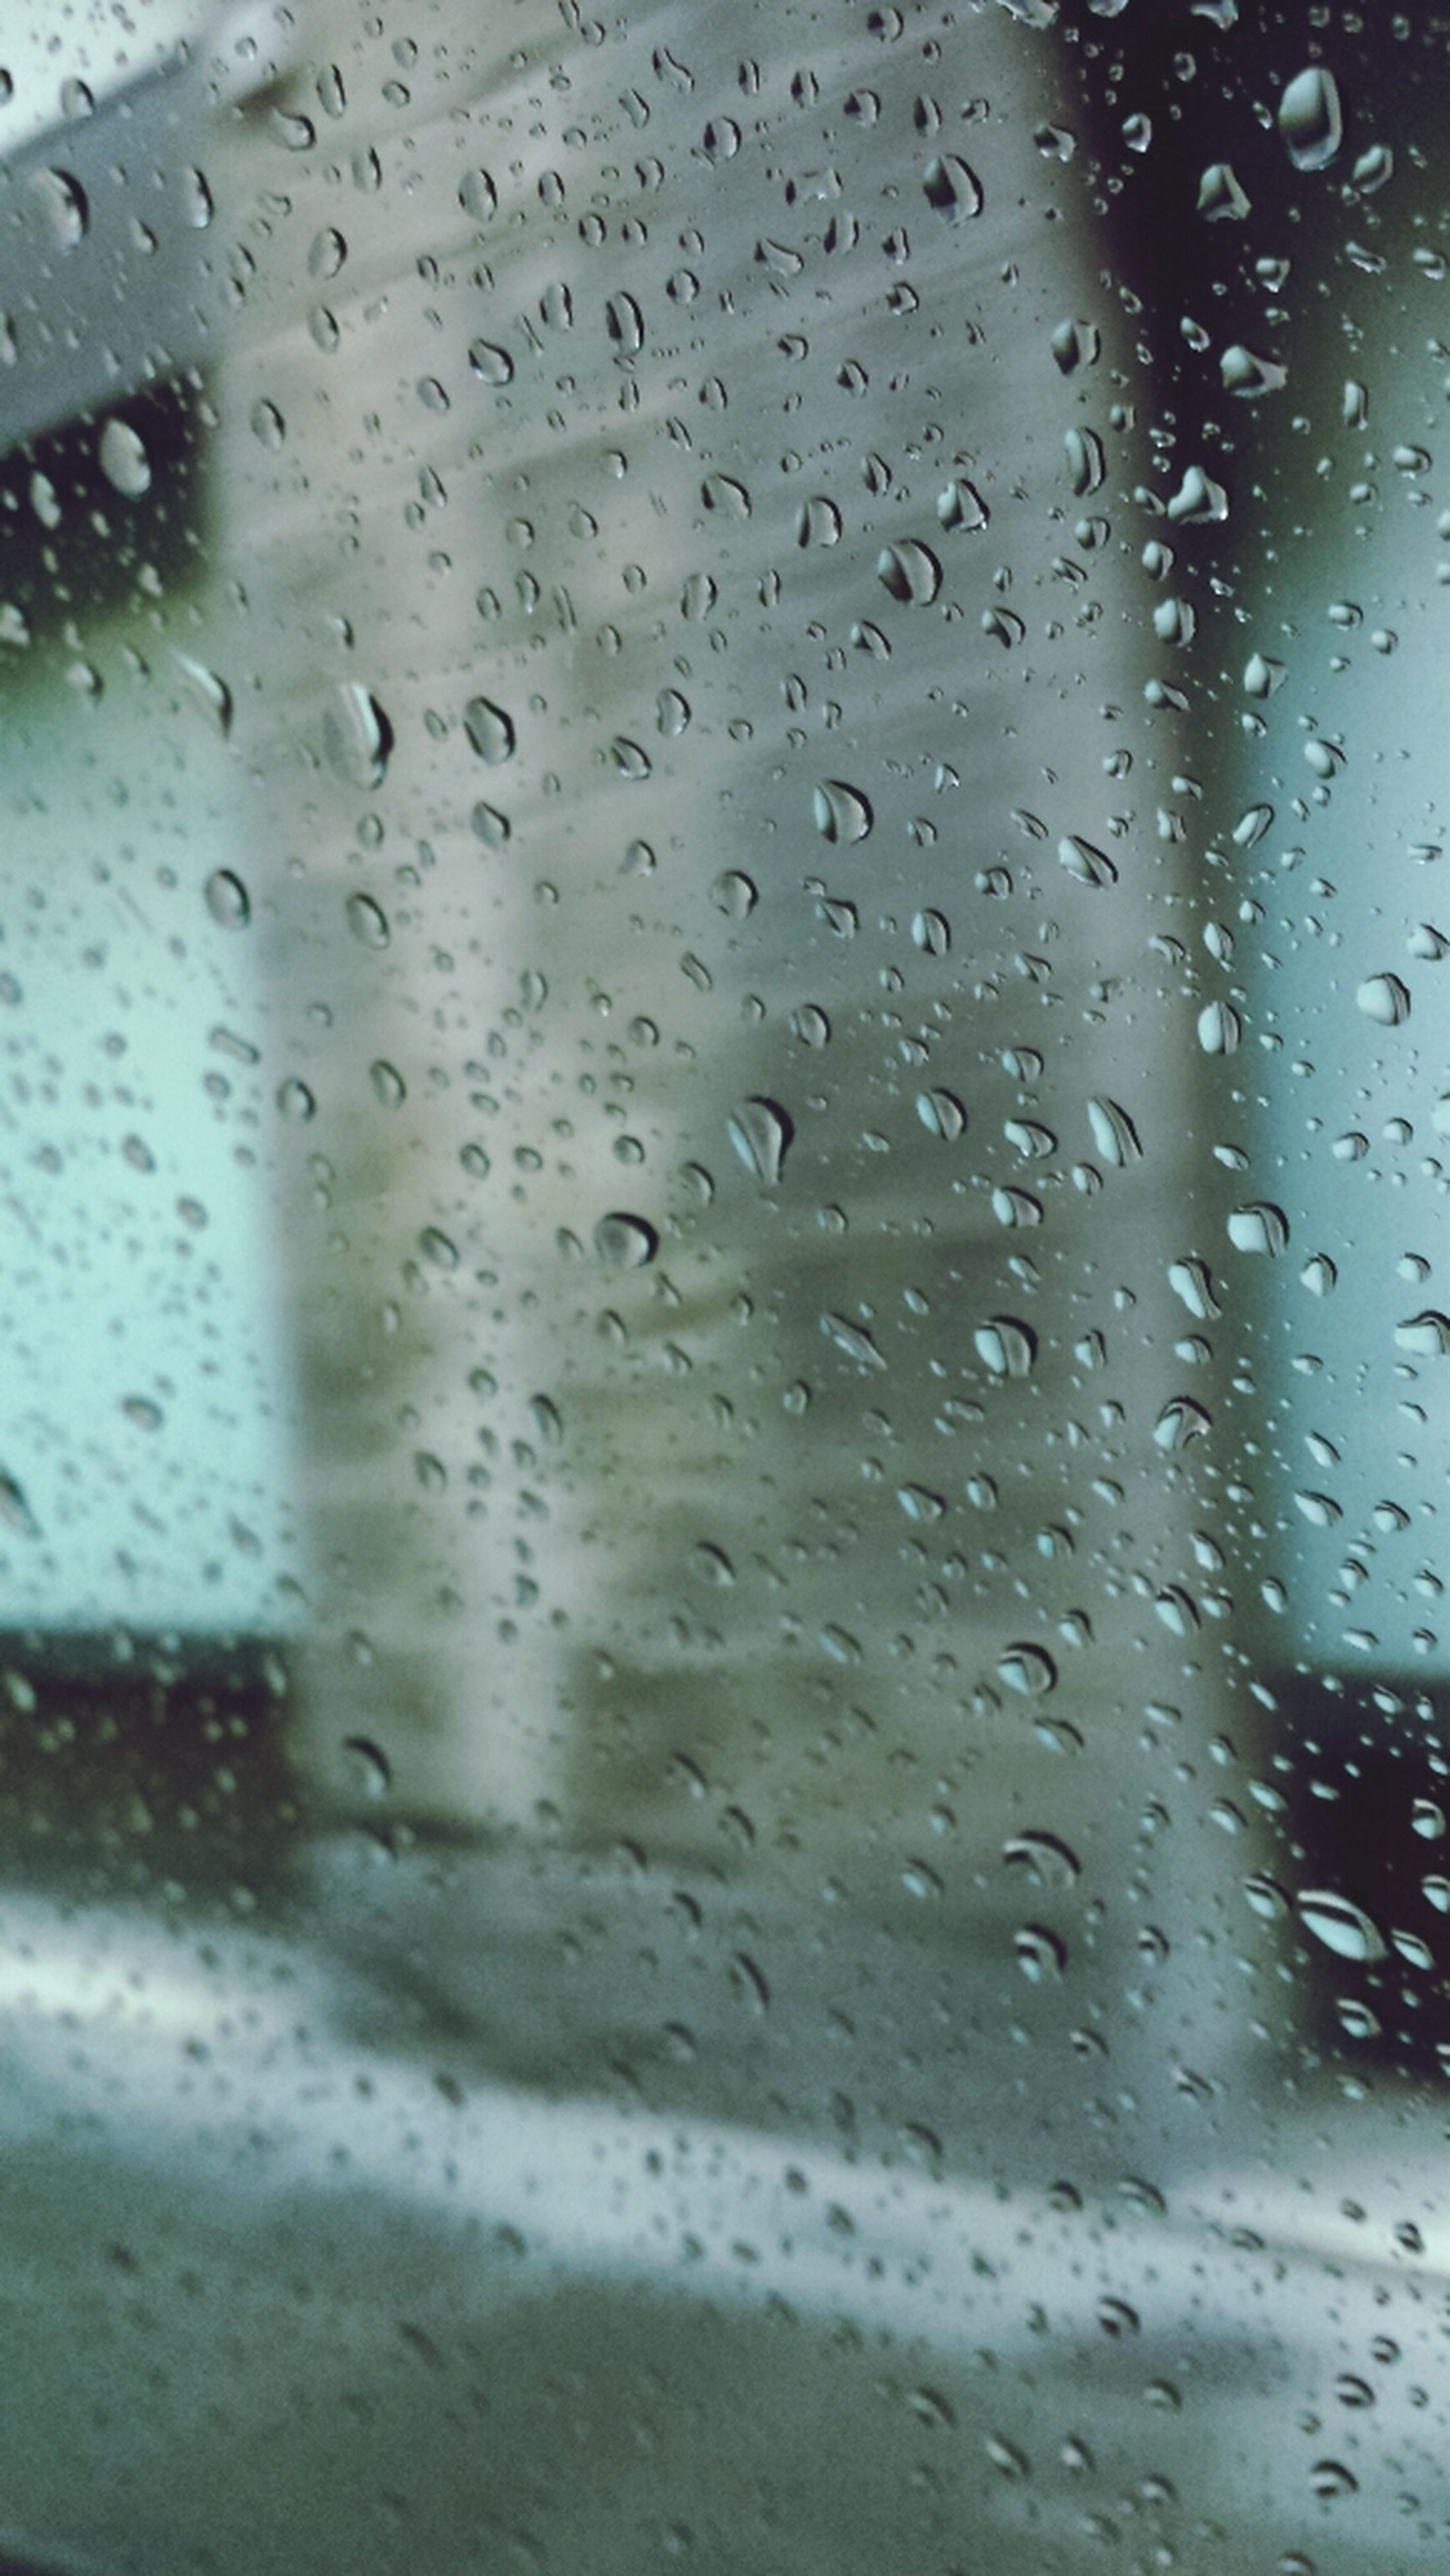 drop, wet, window, rain, glass - material, transparent, water, indoors, raindrop, season, weather, full frame, close-up, car, backgrounds, glass, transportation, vehicle interior, focus on foreground, land vehicle